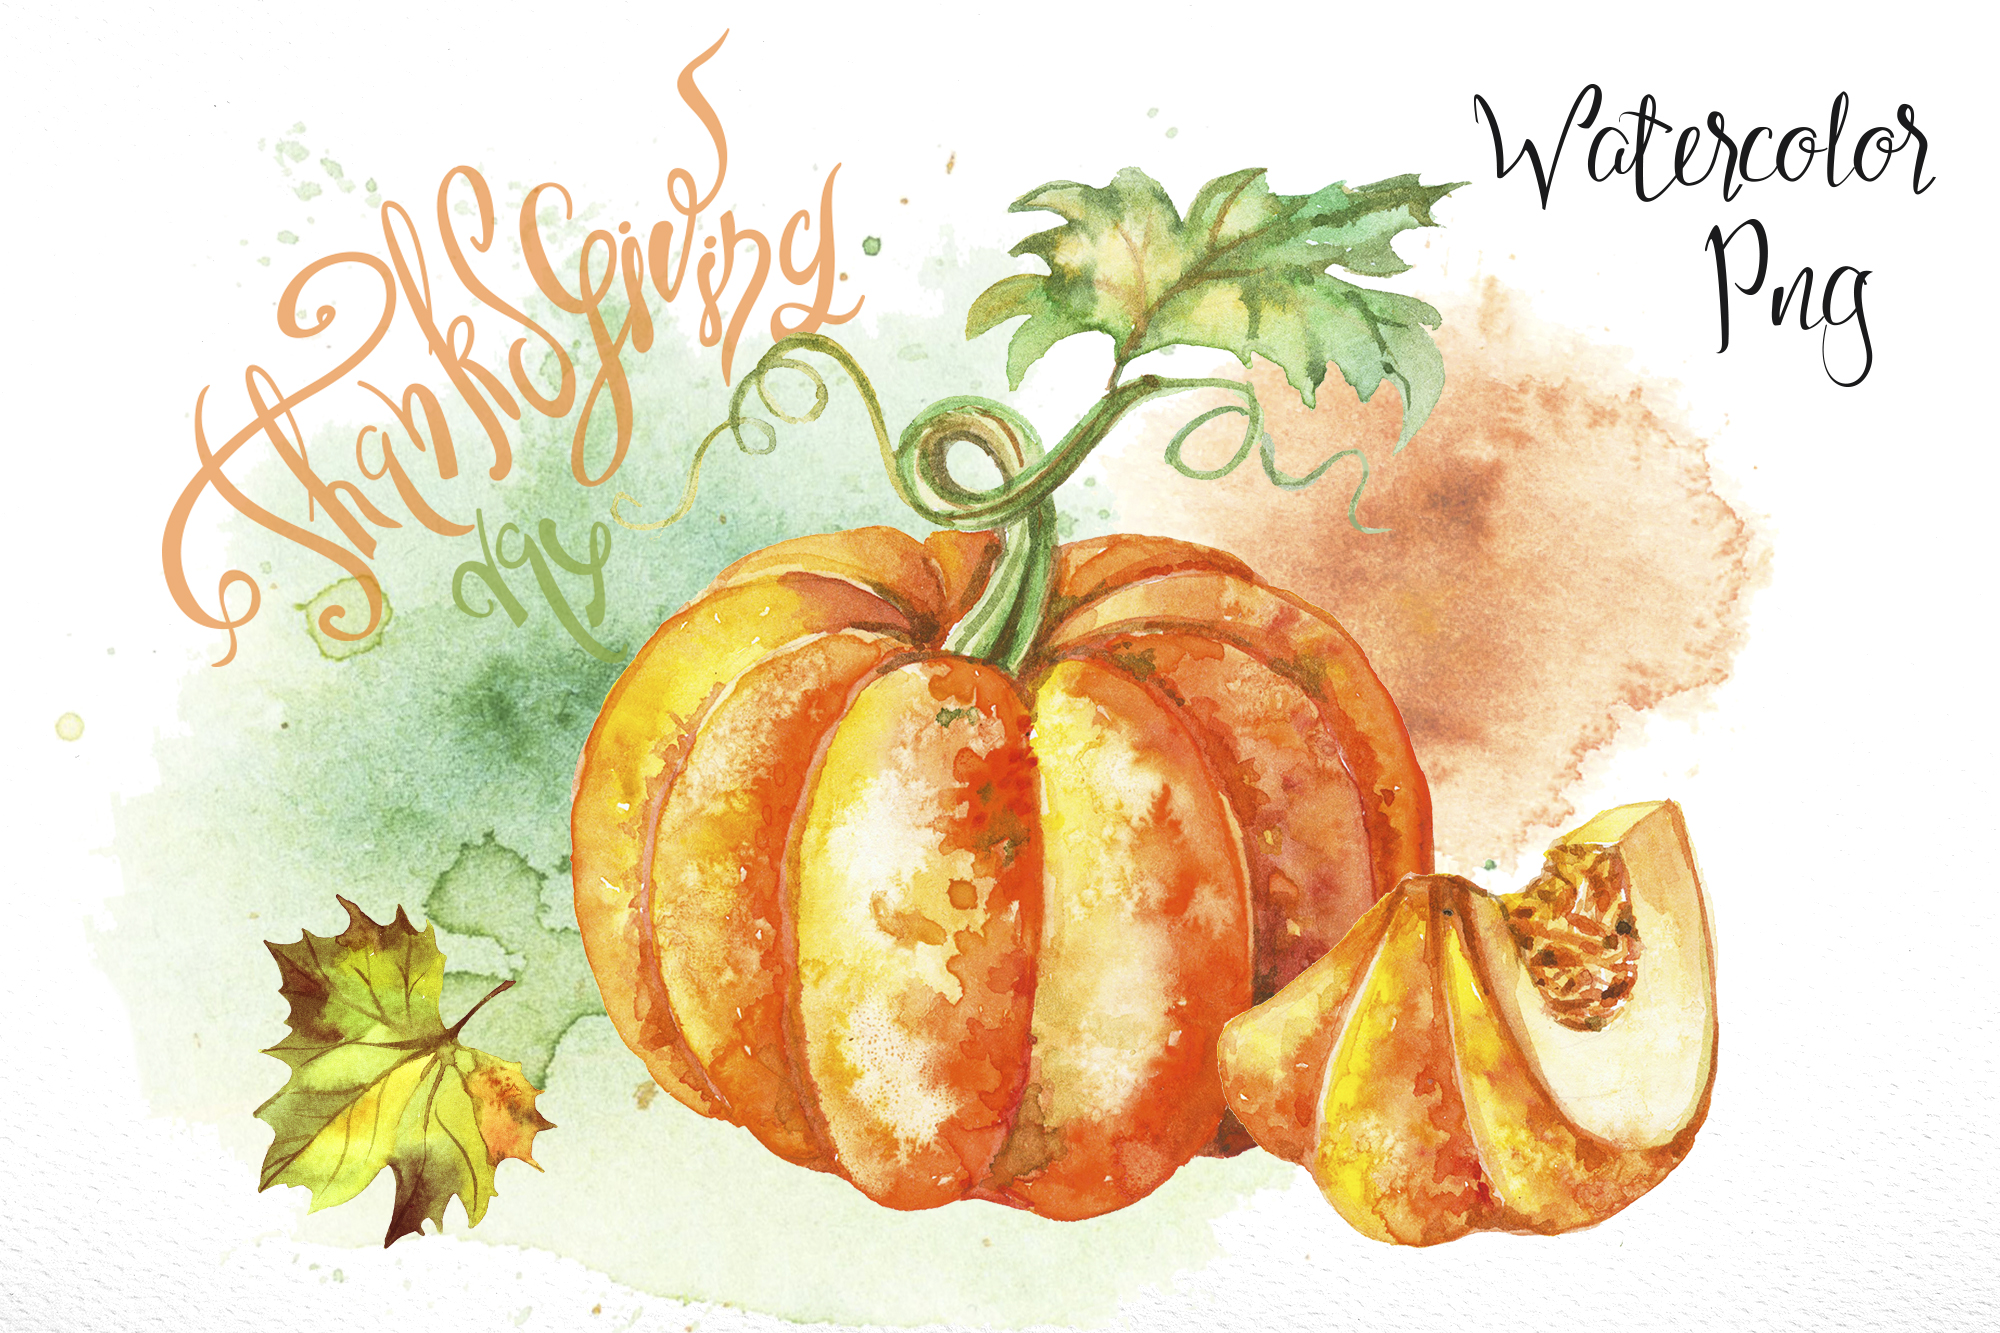 Download Free Thanksgiving Day Set Of Watercolor Clip Graphic By Grigaola for Cricut Explore, Silhouette and other cutting machines.